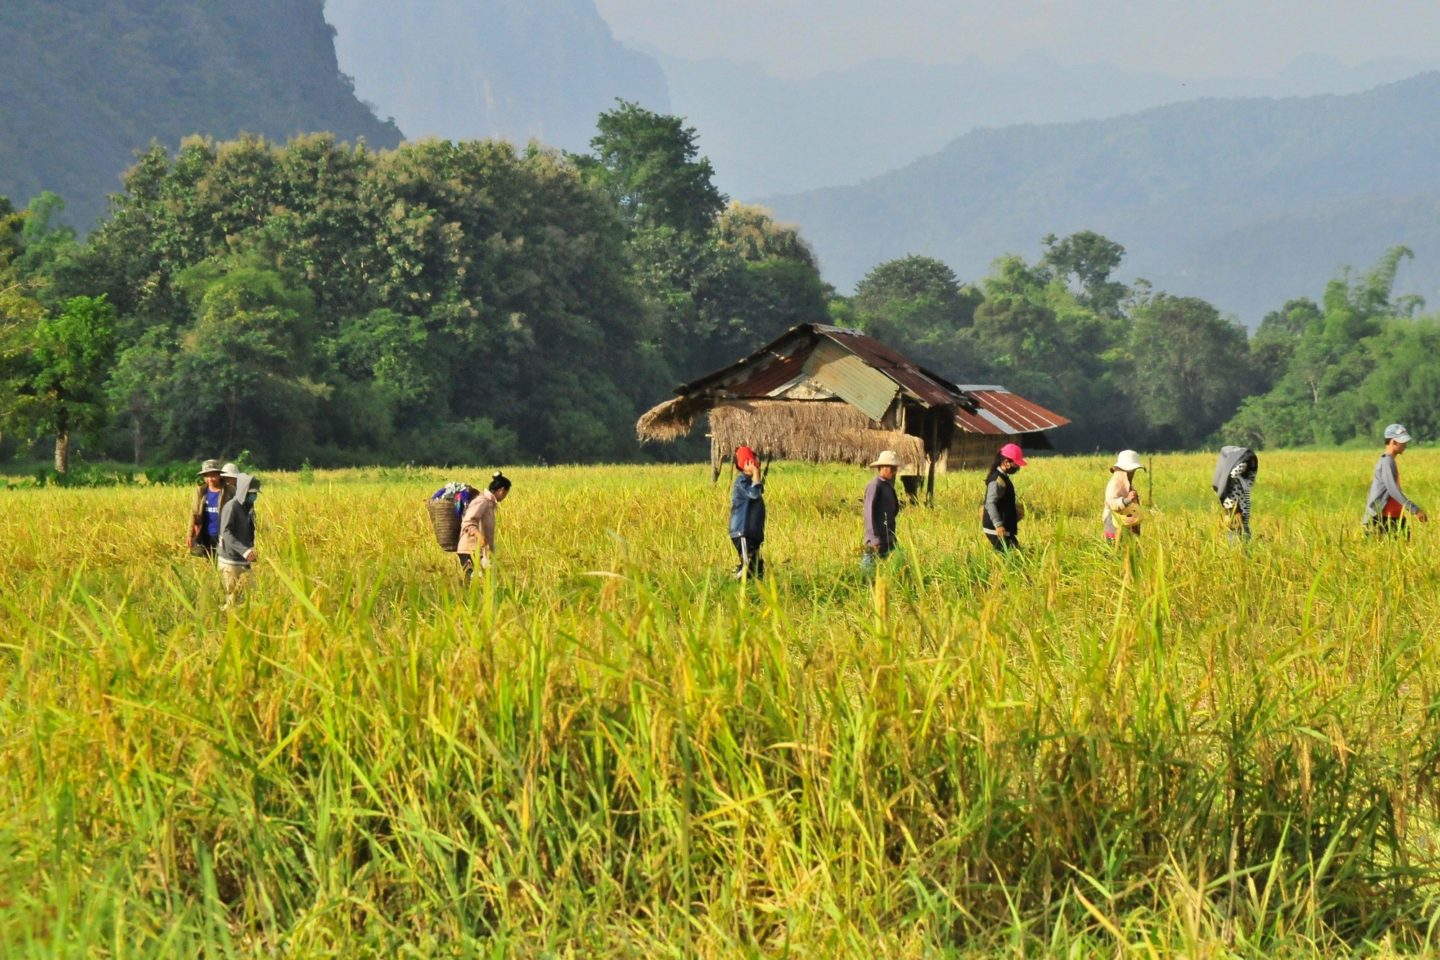 people working in a field farming